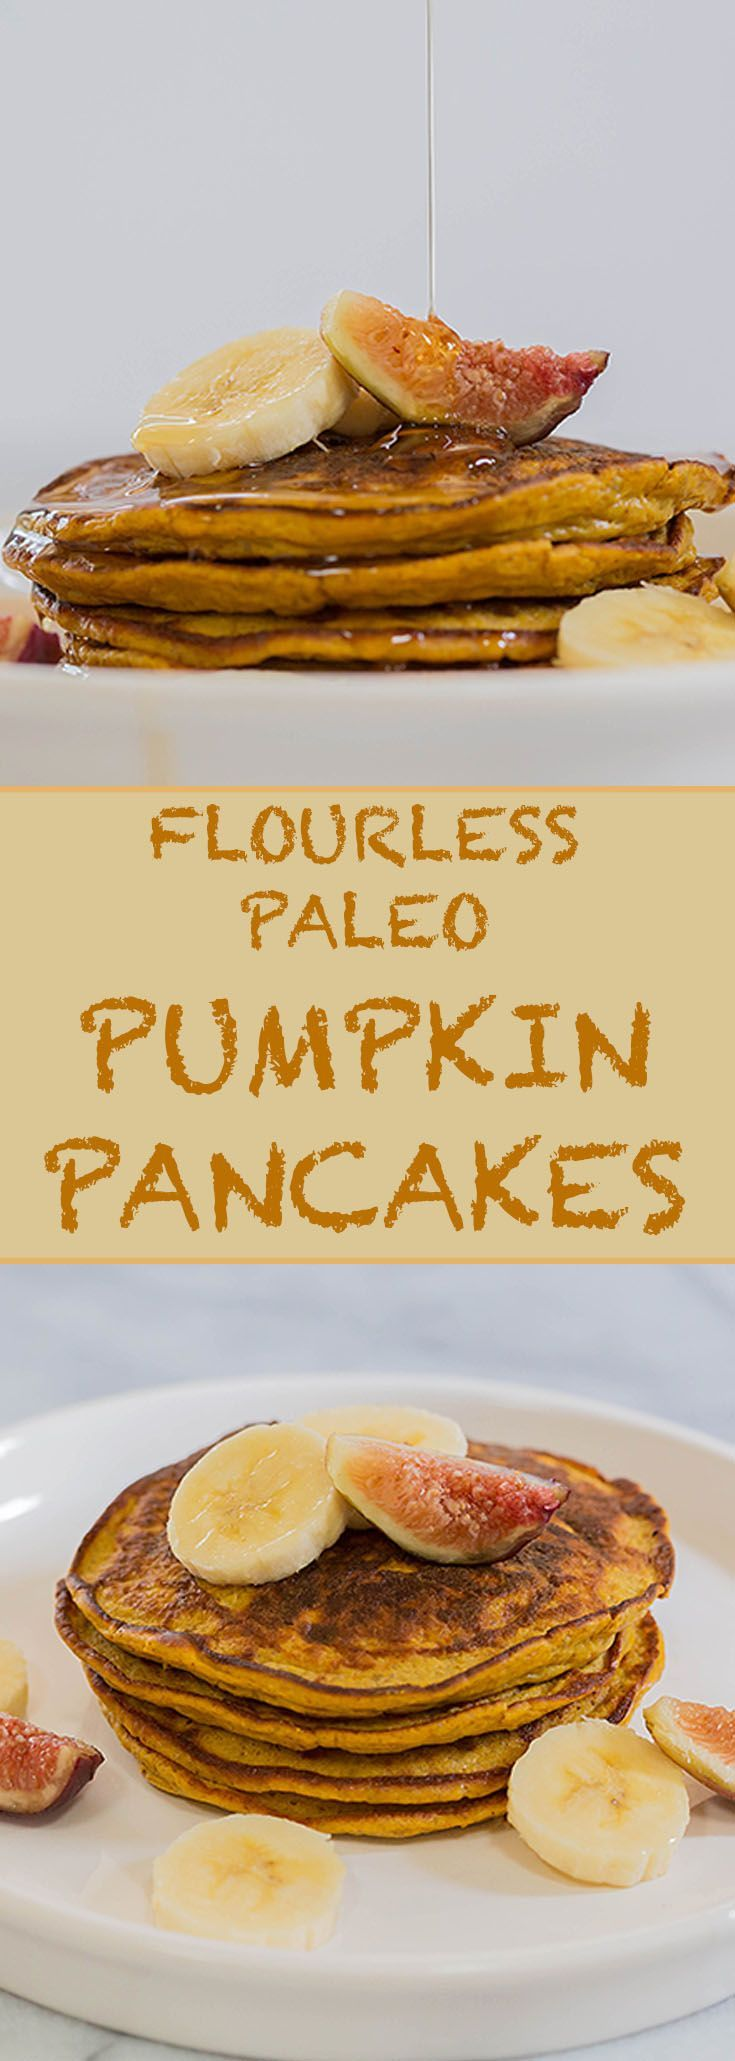 Pumpkin Pancakes These flourless & dairy-free pumpkin pancakes are paleo-friendly and are the perfect festive autumn breakfast.These flourless & dairy-free pumpkin pancakes are paleo-friendly and are the perfect festive autumn breakfast.